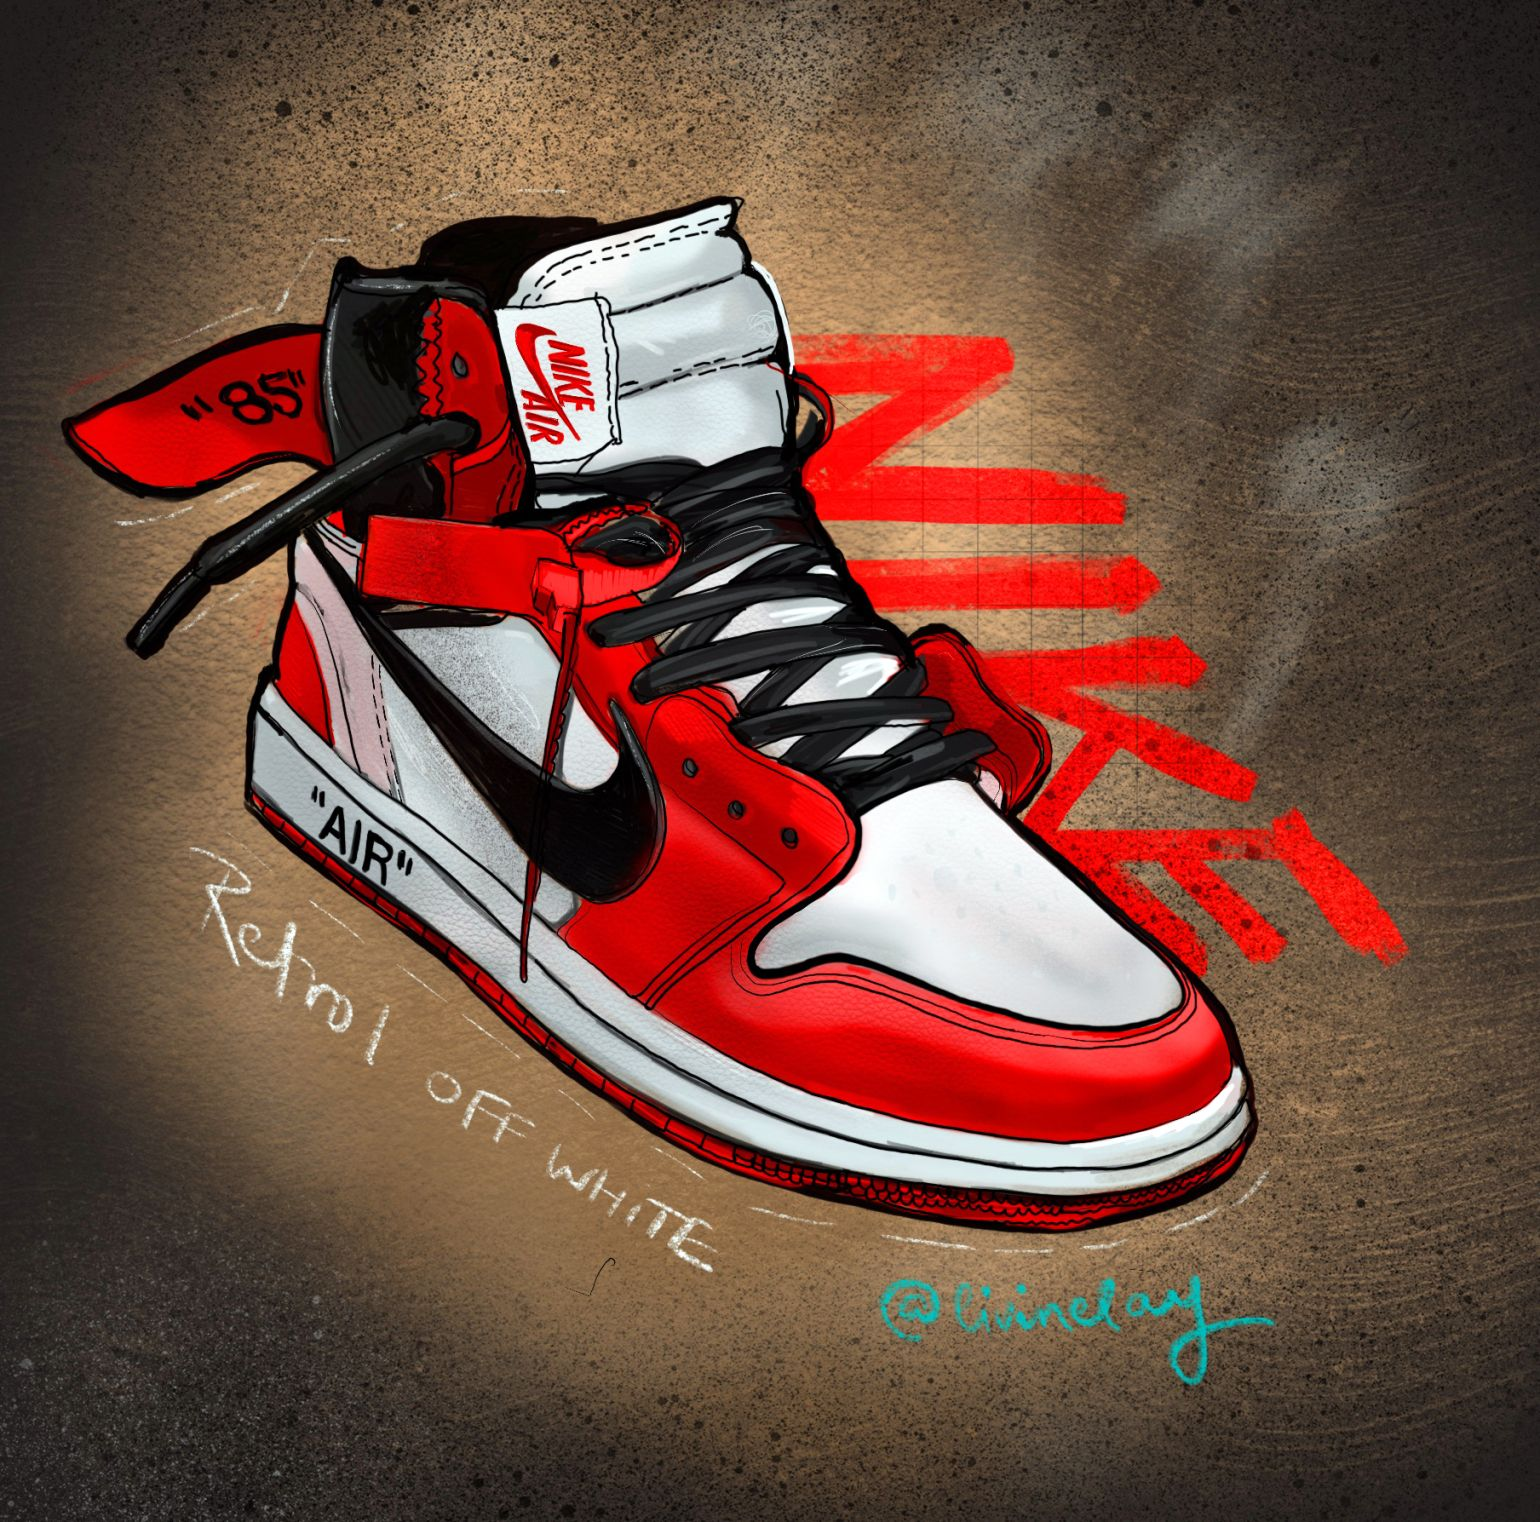 Favorite Sneakers Sneakers wallpaper, Nike wallpaper